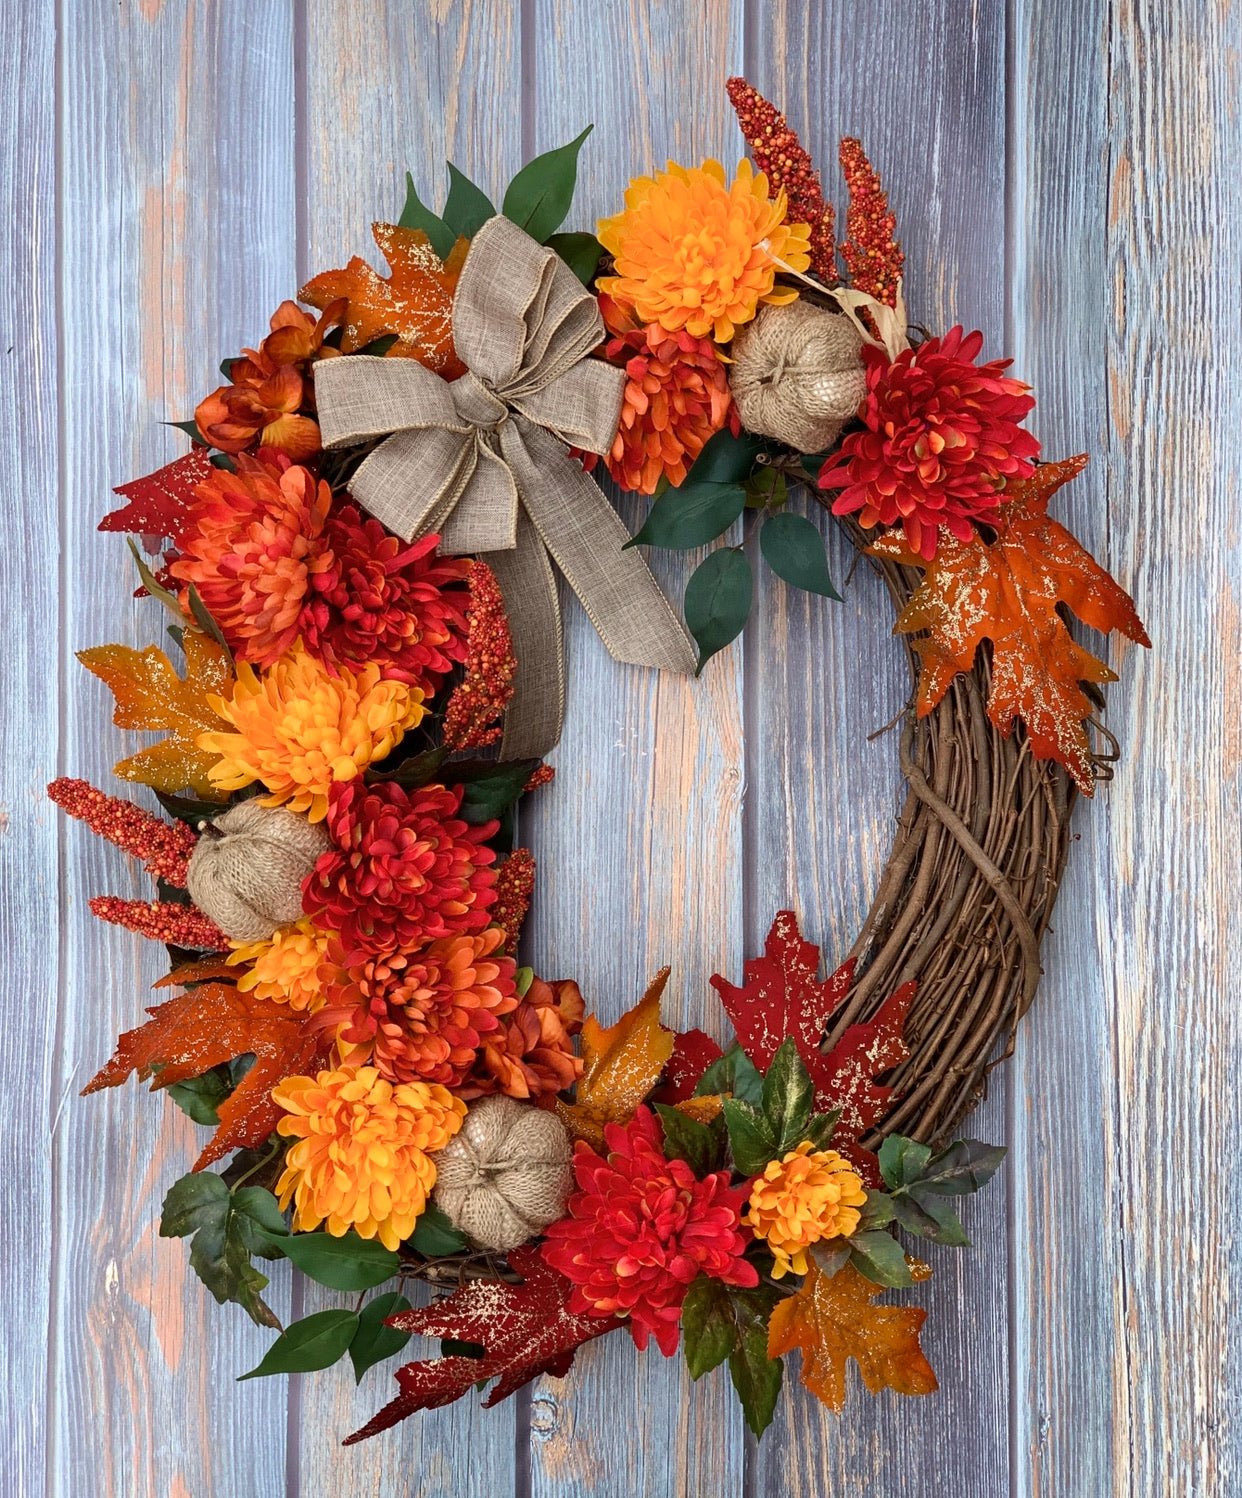 Colorful Fall Mum Wreath